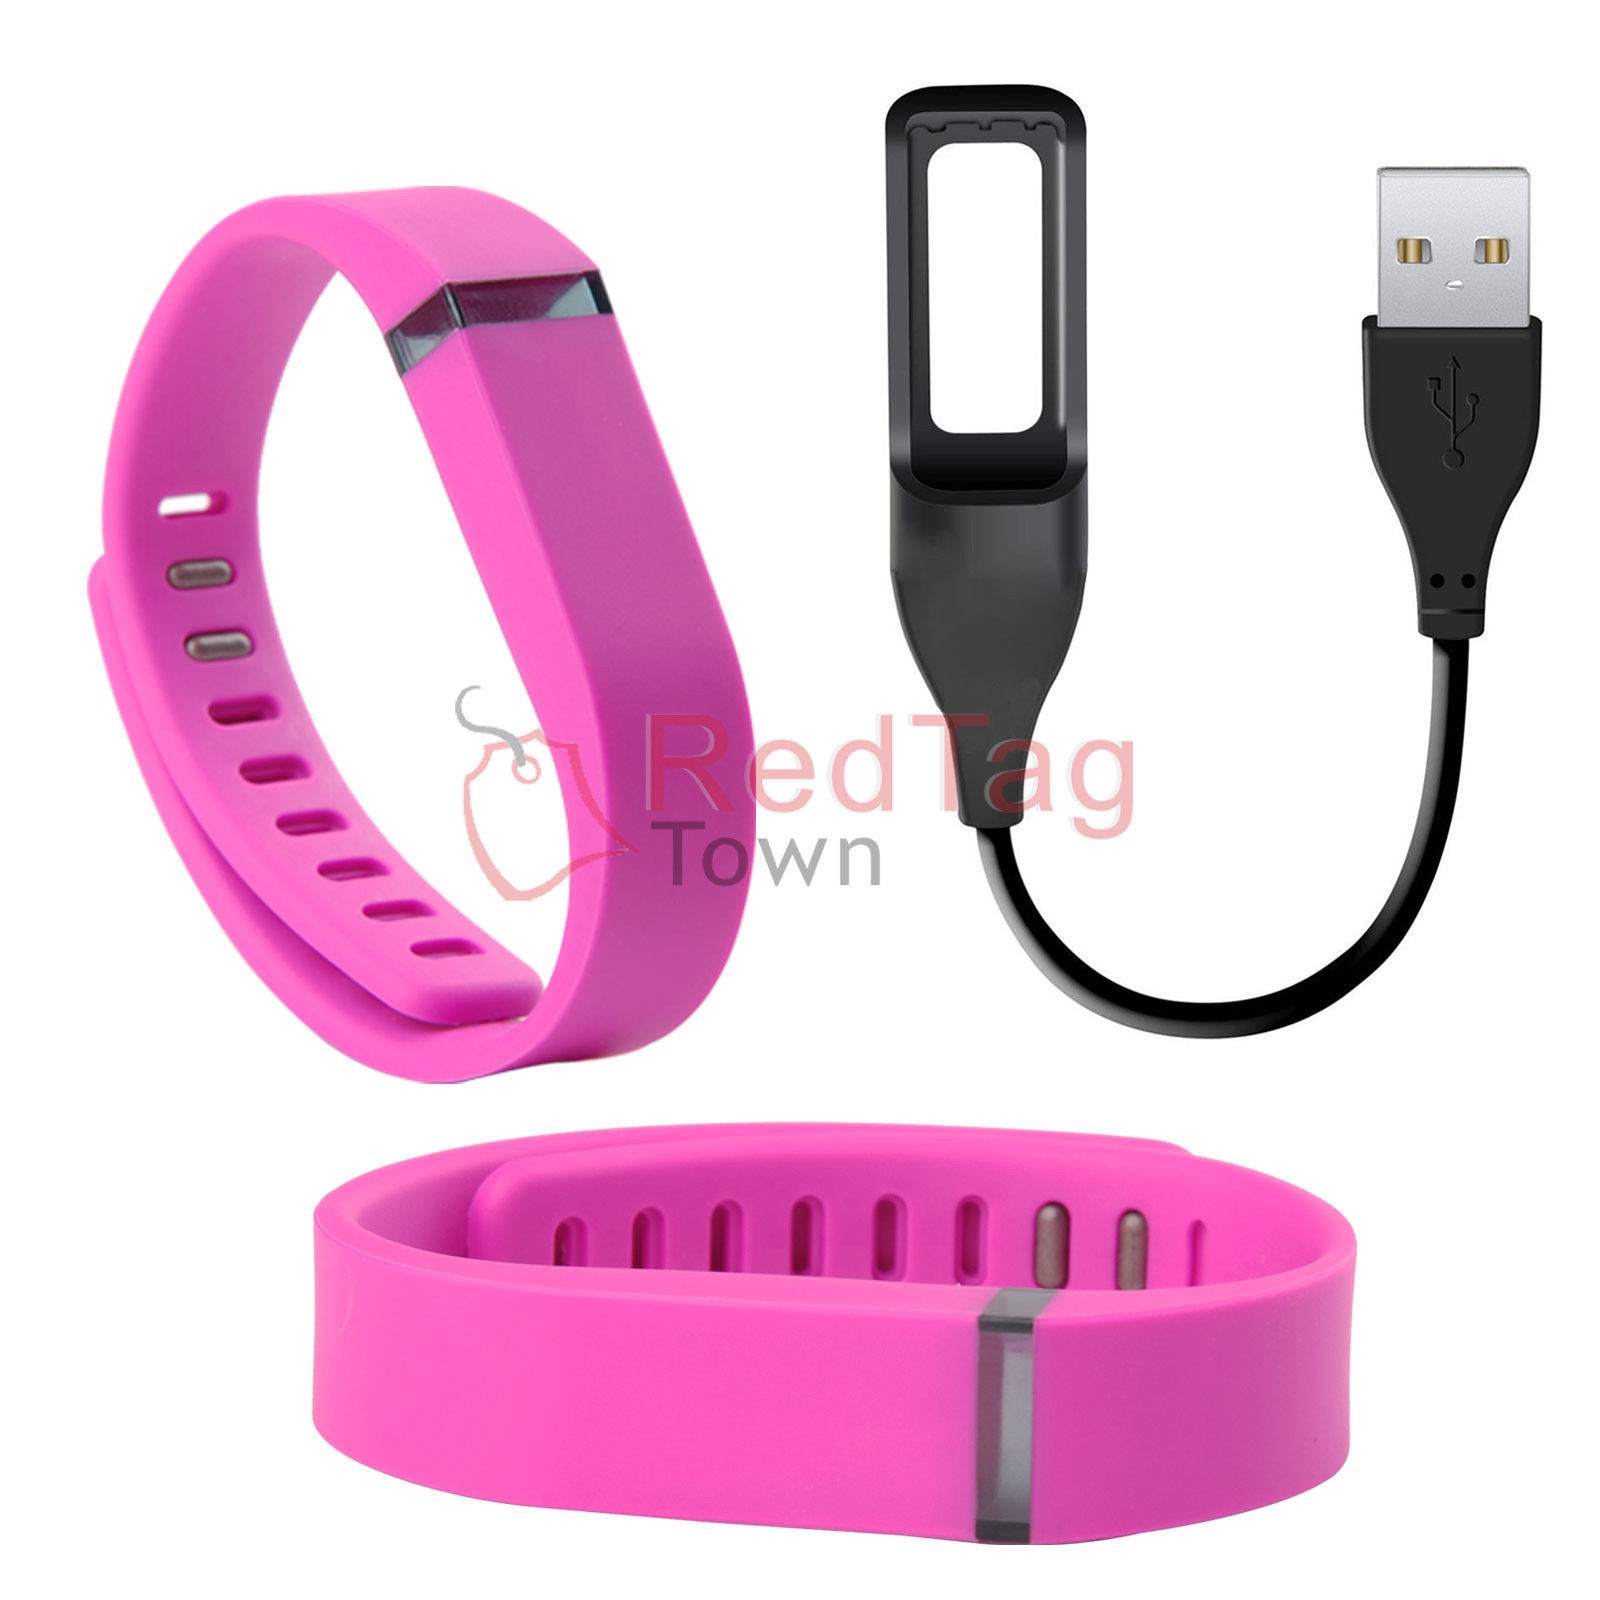 Replacement-USB-Charger-Cable-Wrist-Band-Clasp-For-Fitbit-Flex-Wireless-Bracelet